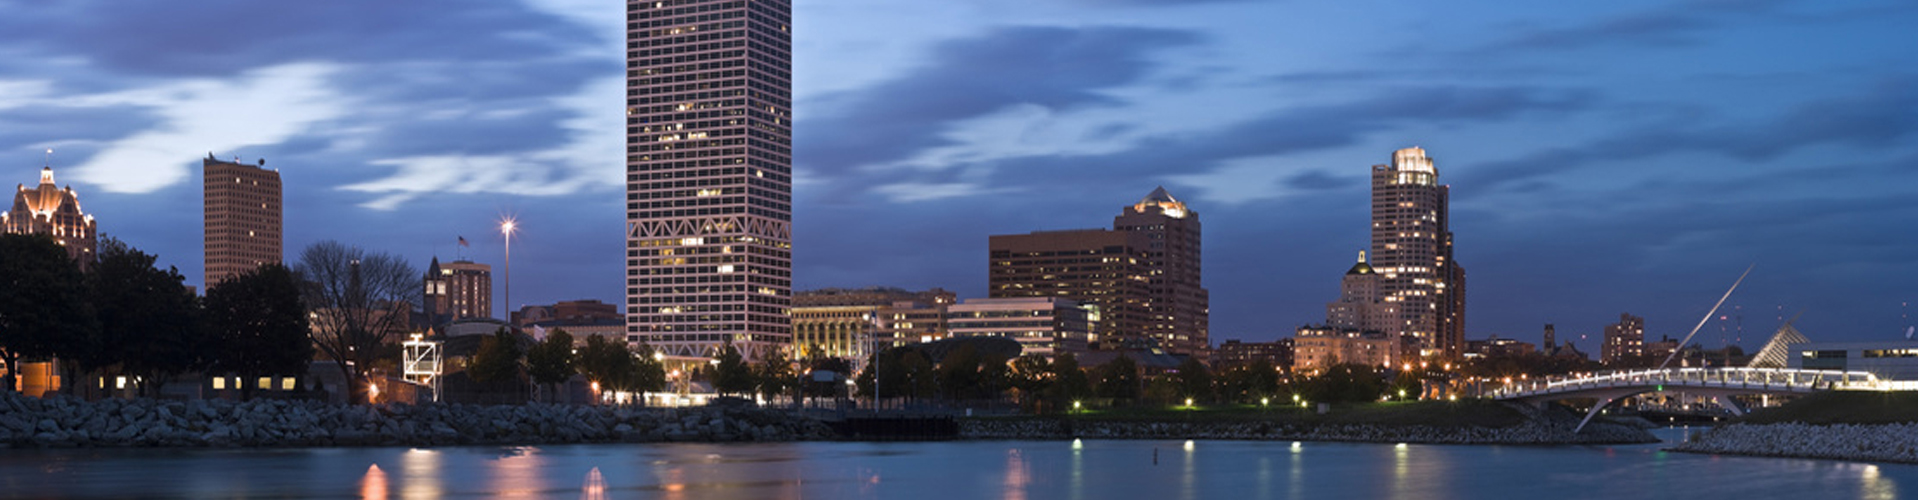 Home to the beer that made Milwaukee famous and PBR, Milwaukee is a genuine american city that was the backdrop of iconic TV shows like Happy Days, Laverne & Shirley and That '70s Show was close enough in fictional Point Place a suburb outside of Kenosha.